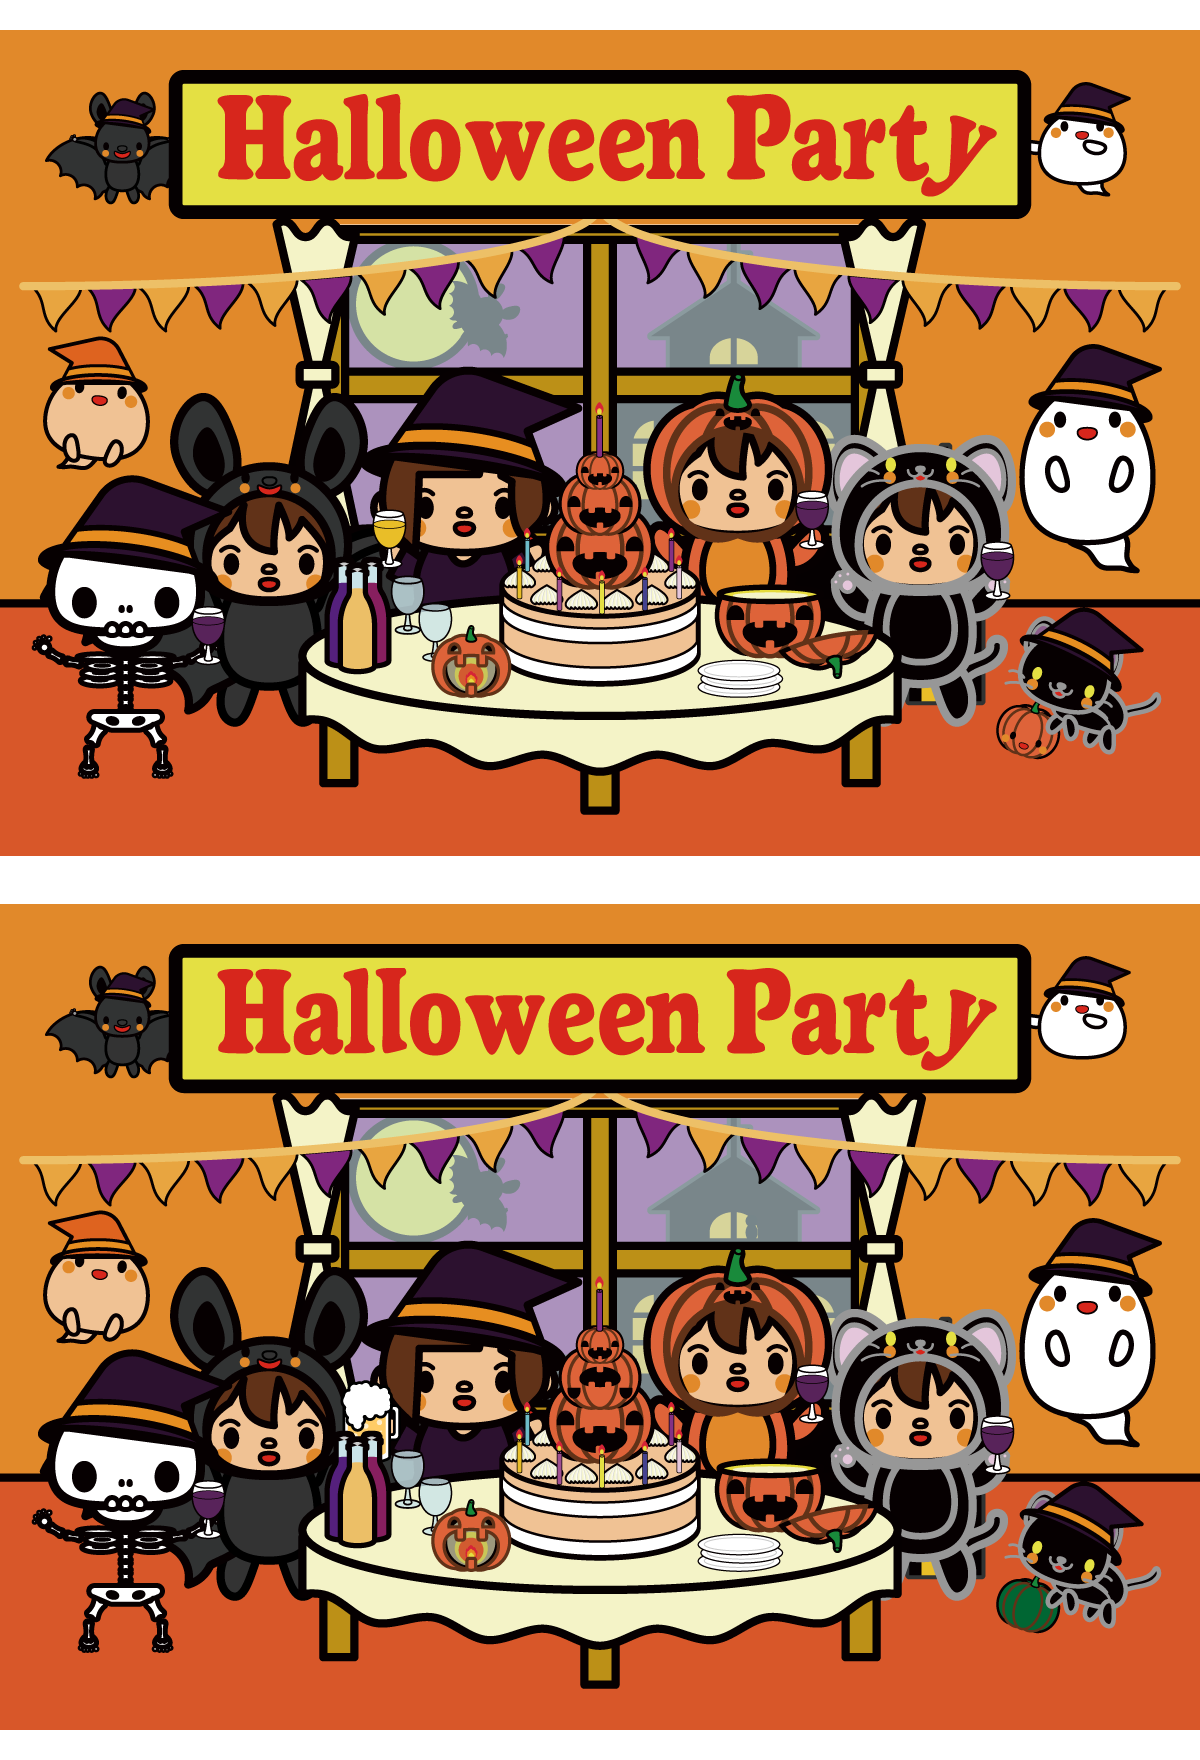 spot-the-difference_halloween-party-sample